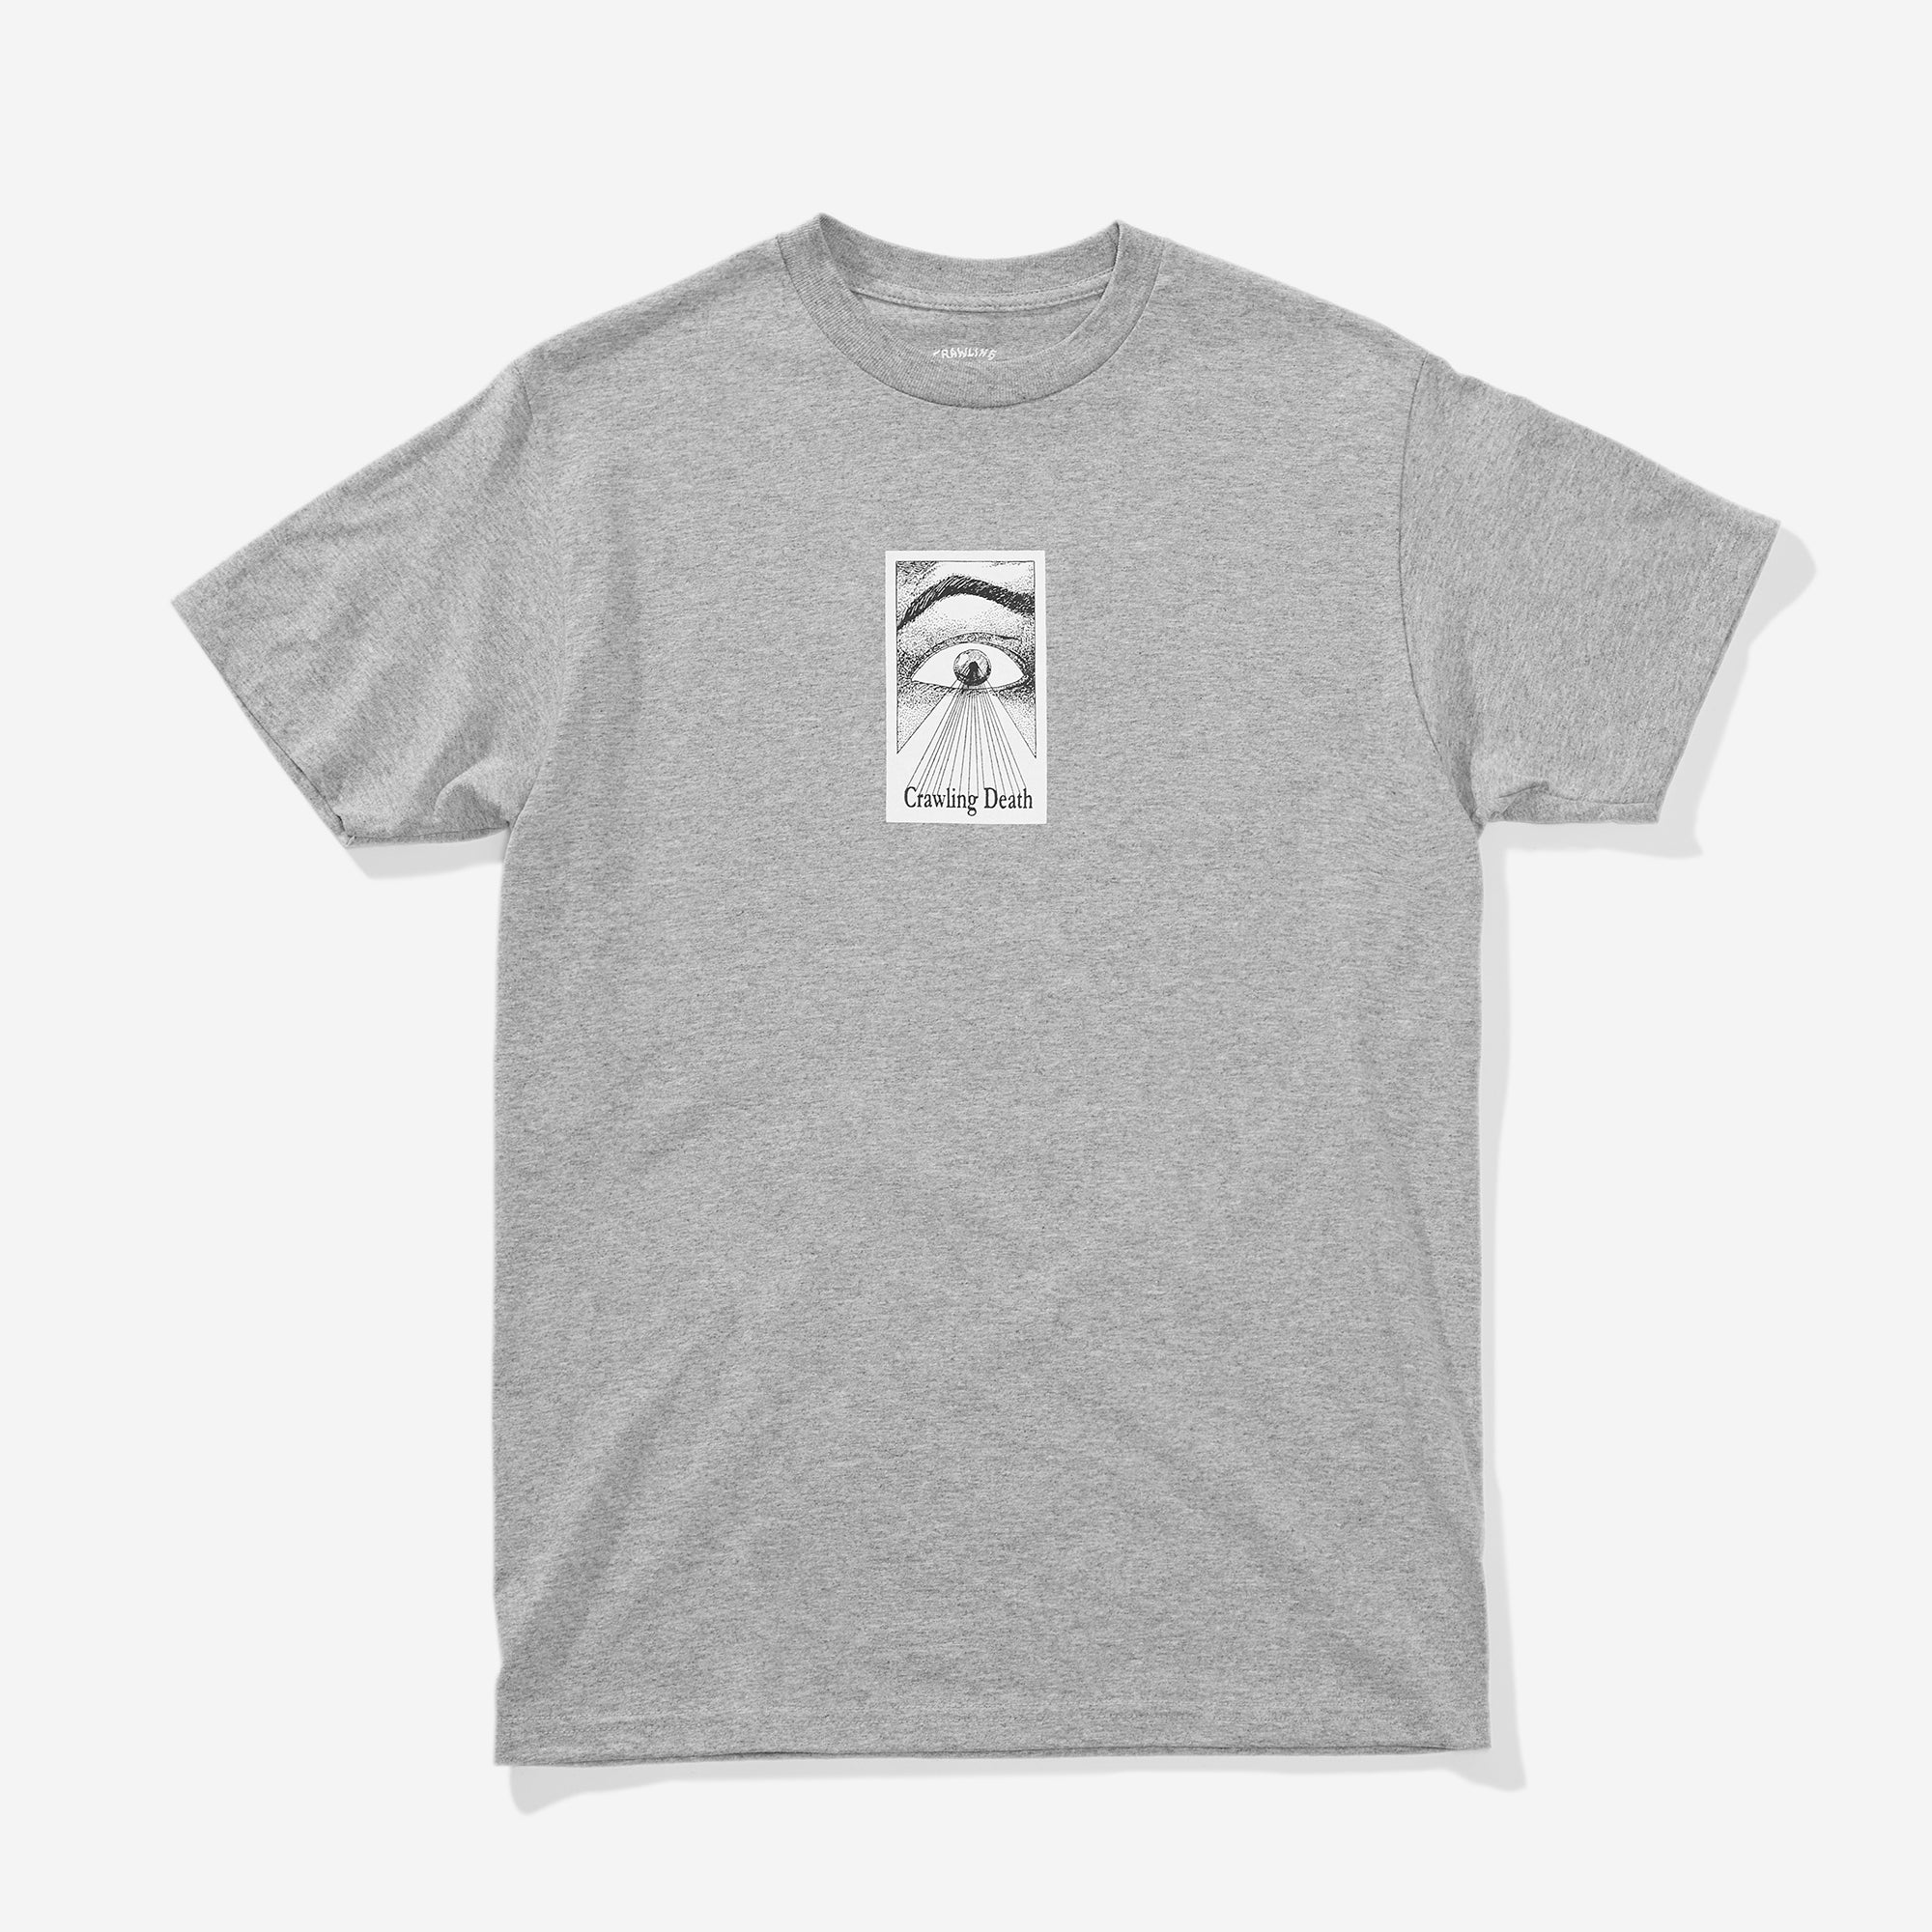 Eye Scan T-Shirt - Grey